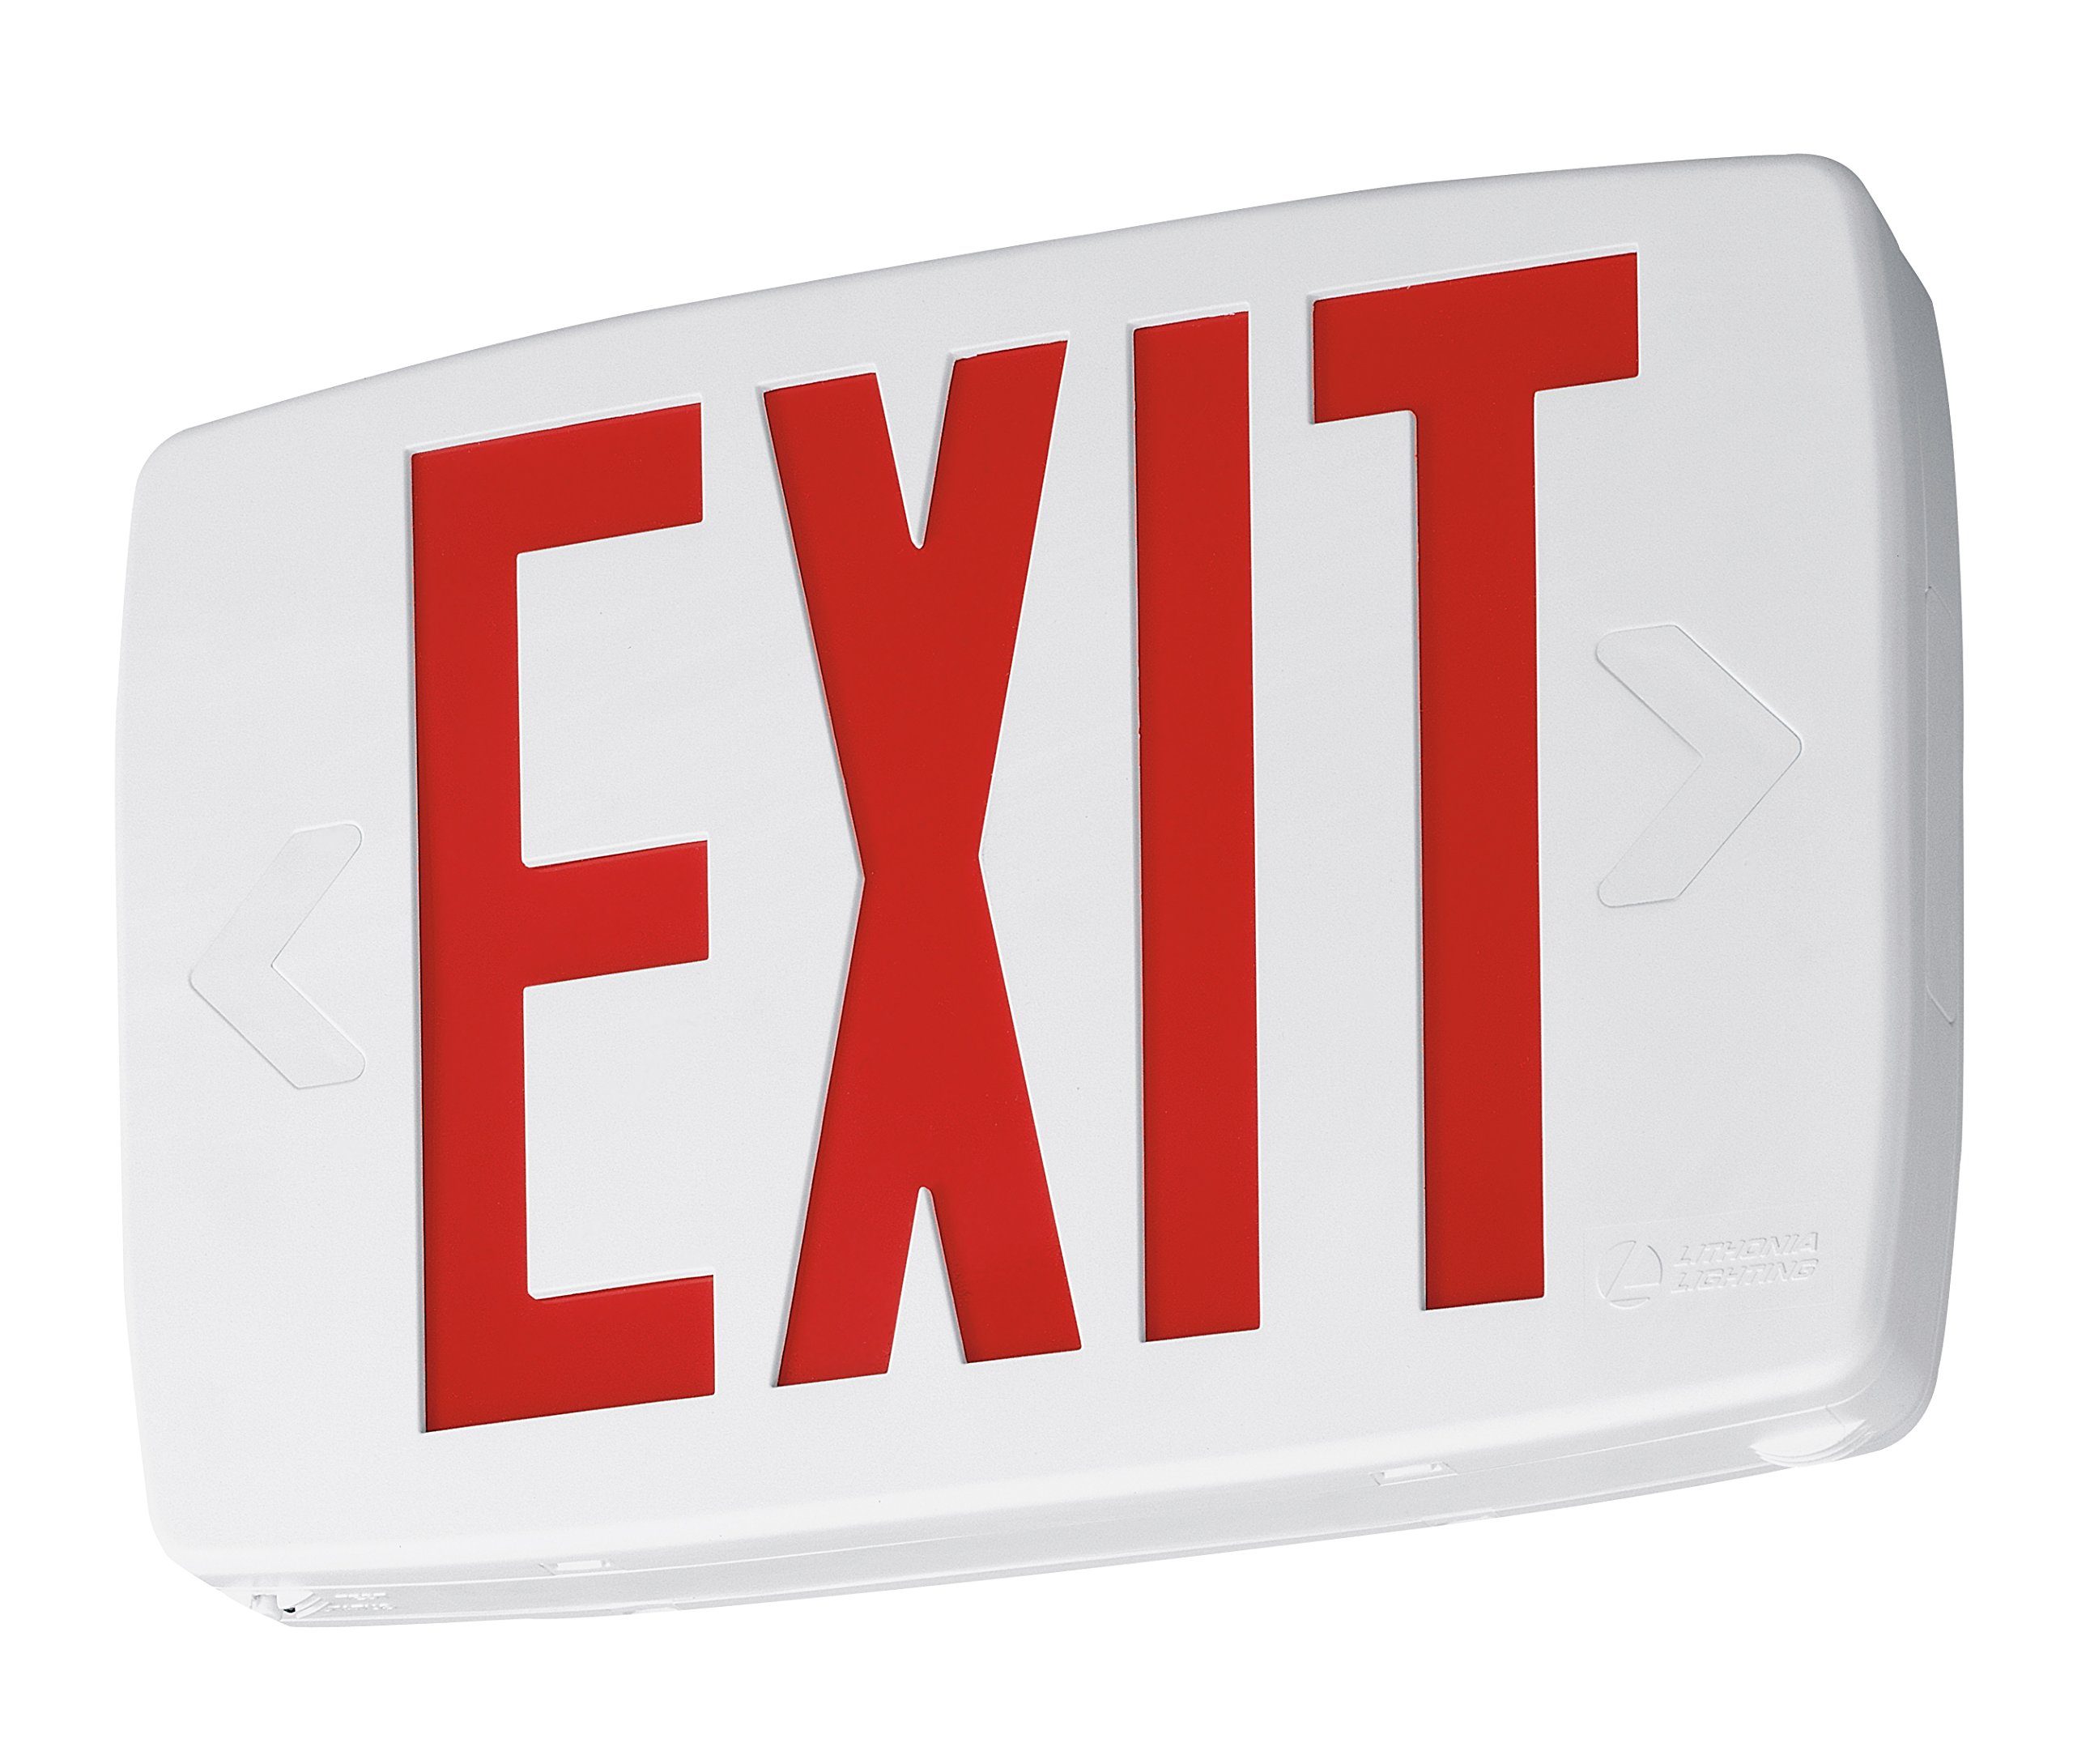 Lithonia Lighting LQM S W 3 R 120/277 EL N SD M6 Quantum Thermoplastic LED Emergency Exit Sign with Stencil-Faced White Housing and Red Letters with Nickel Cadium battery and Self Diagnostic